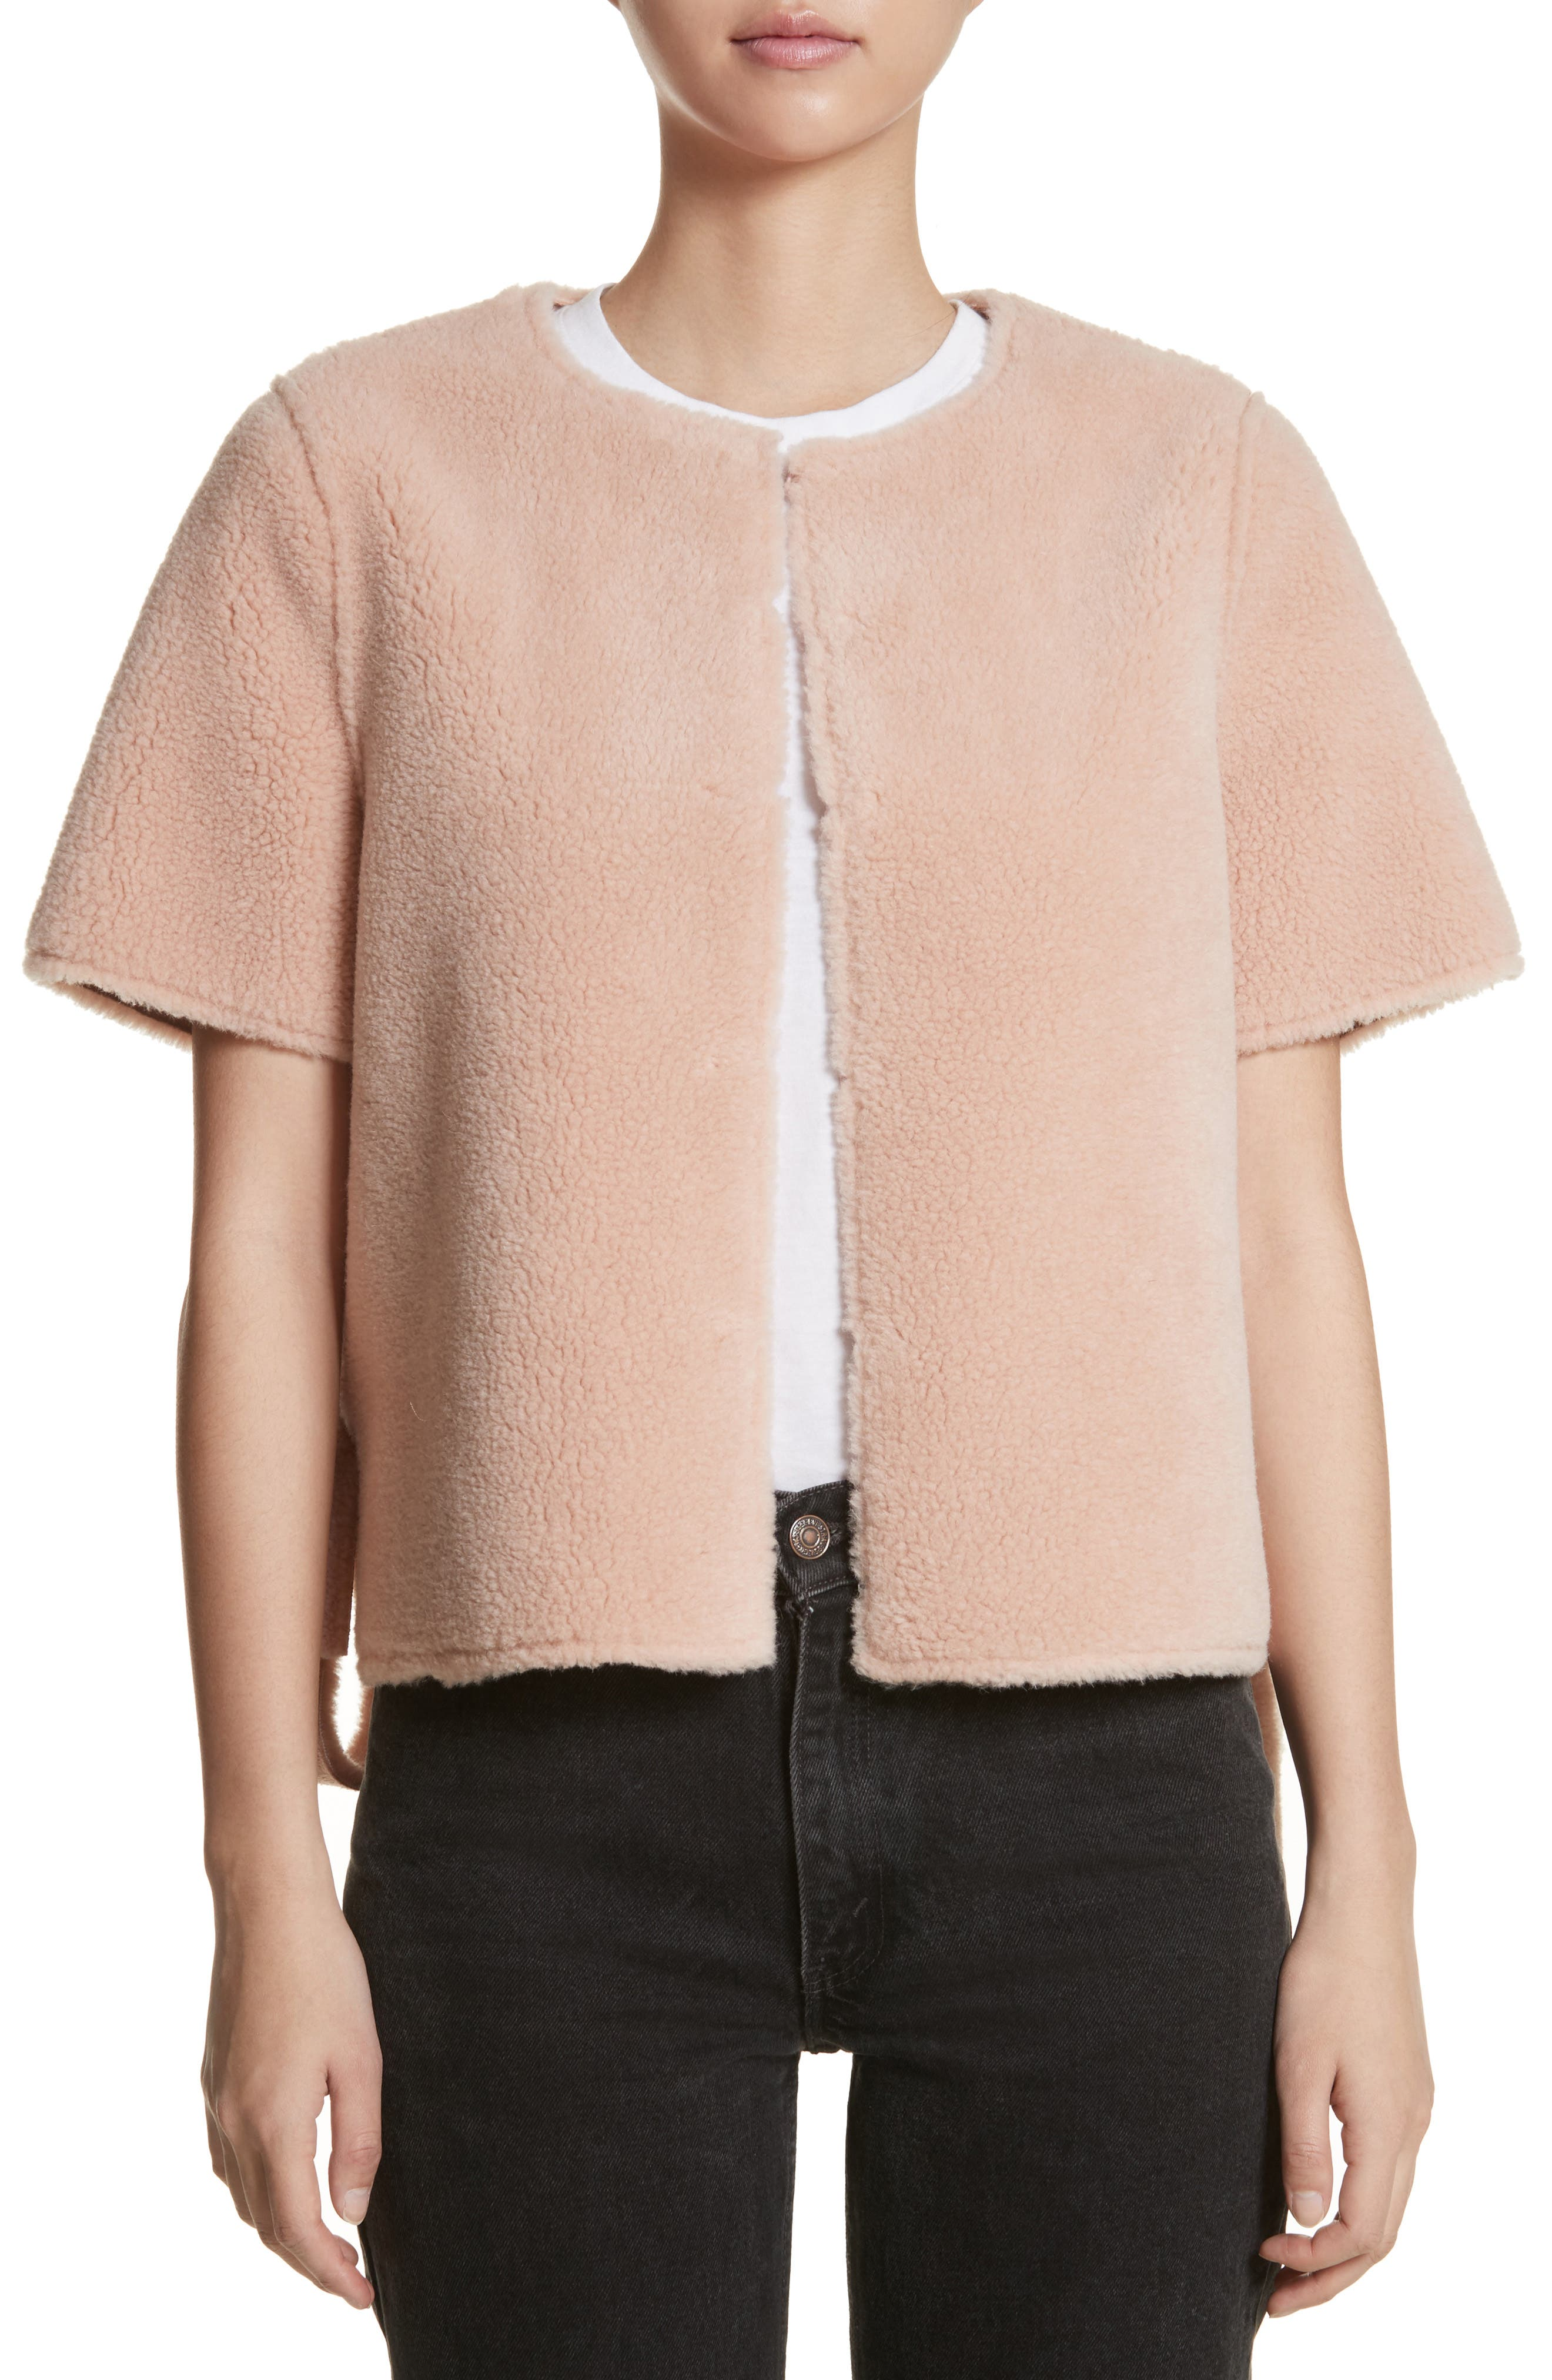 Alfonso Faux Shearling Side Tie Jacket,                             Main thumbnail 1, color,                             Peach Beige